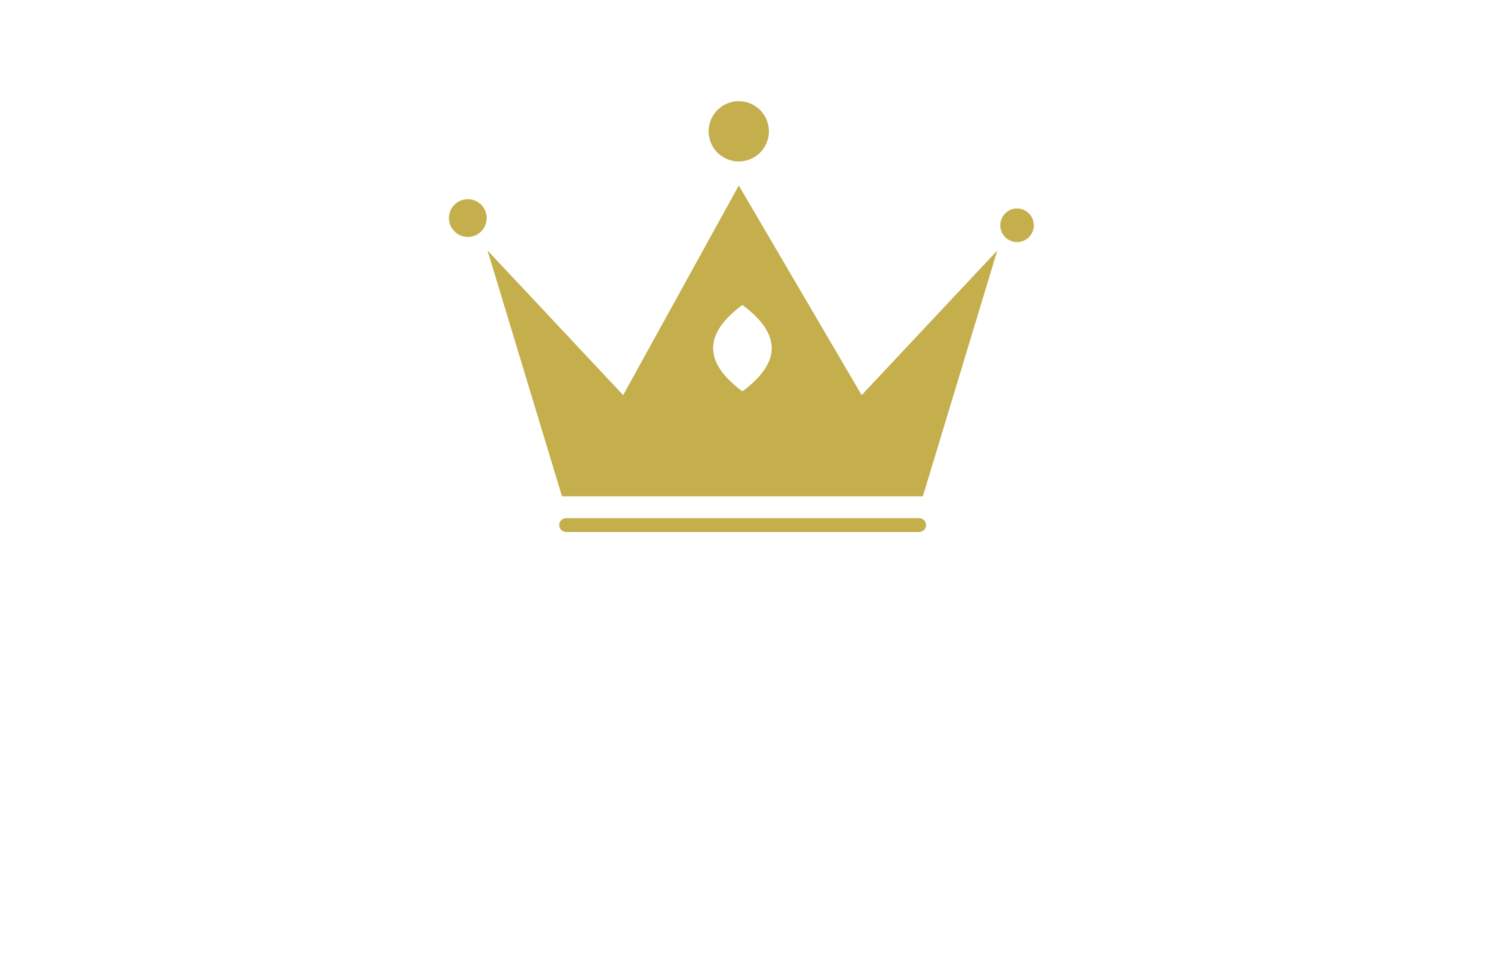 The Royal Piano show